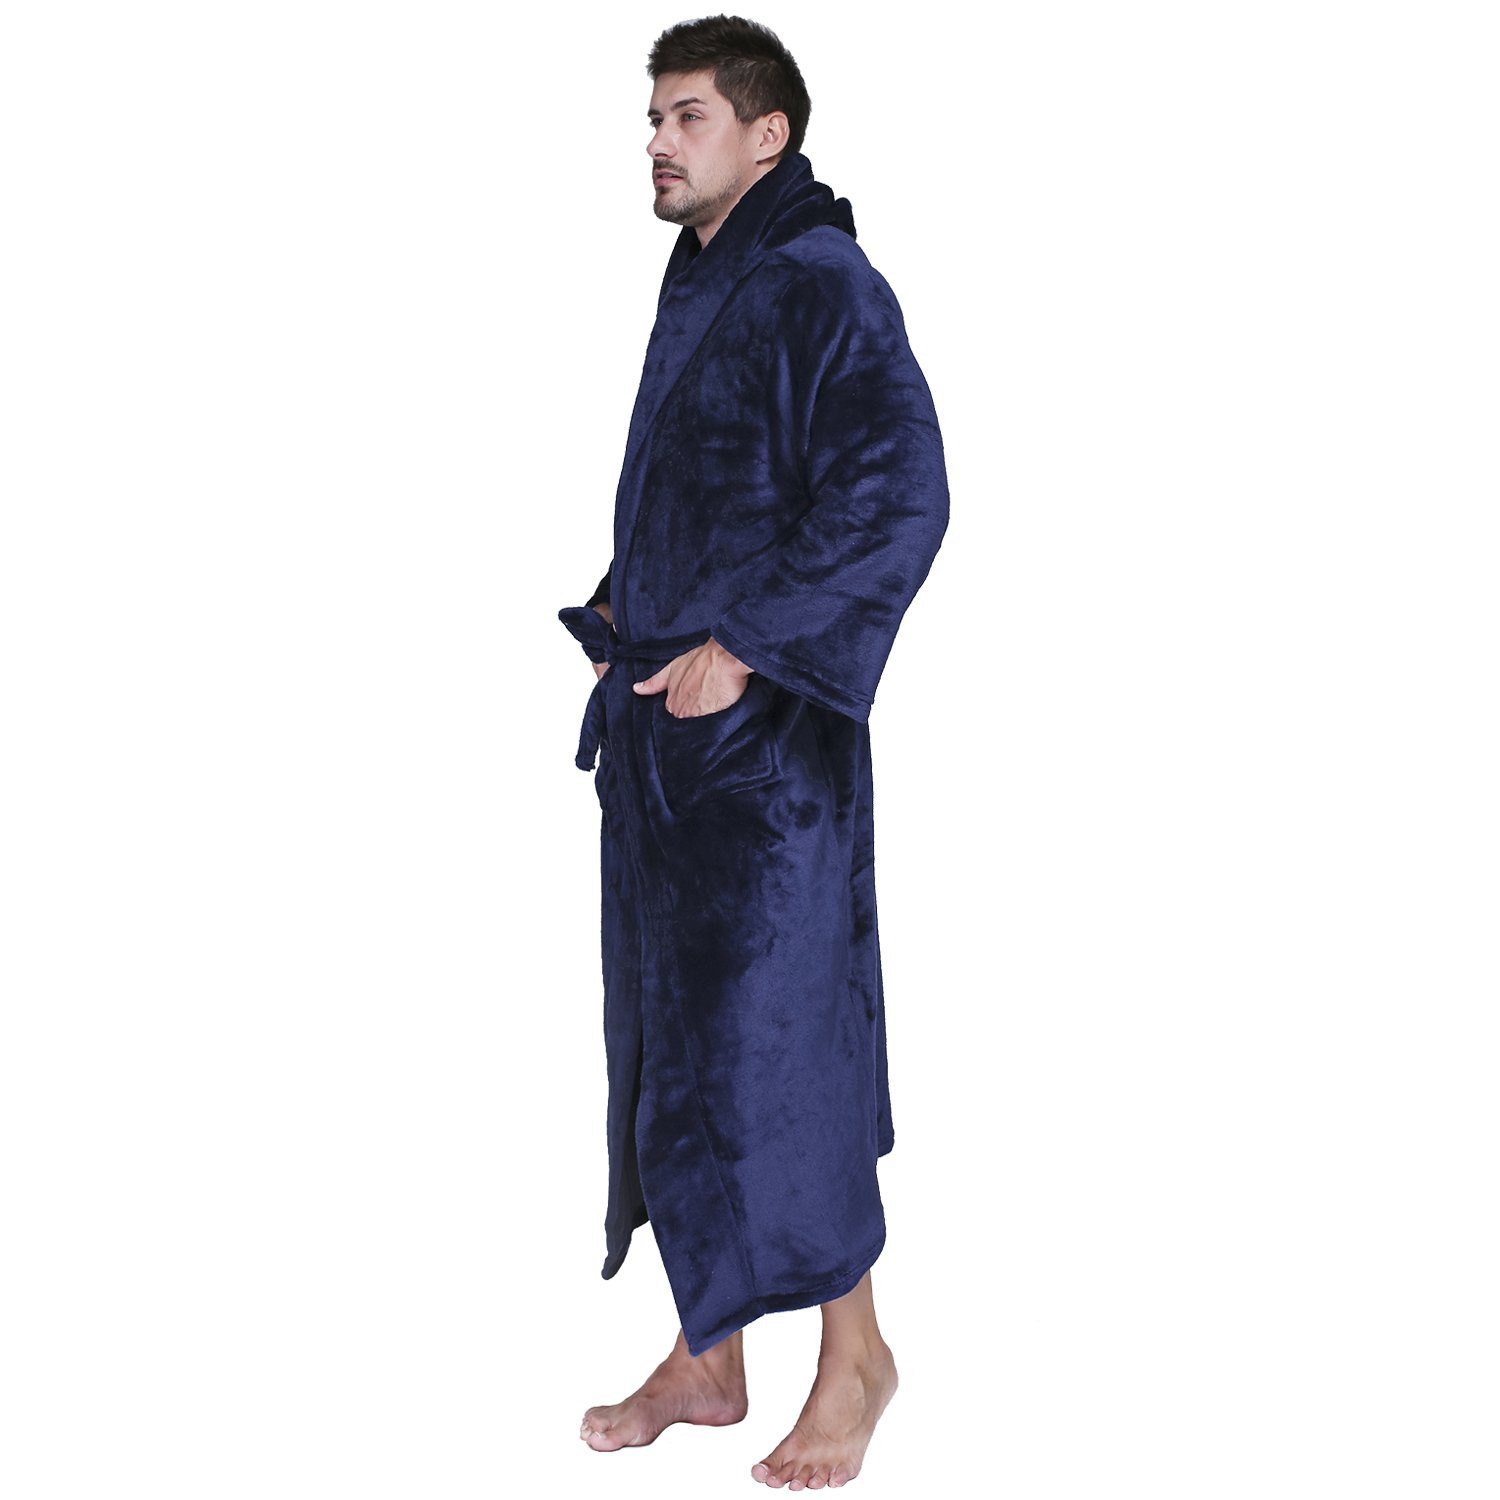 Cahayi Mens Bathrobe Plus Size Plush Flannel Hooded Robe Spa Hotel Collections